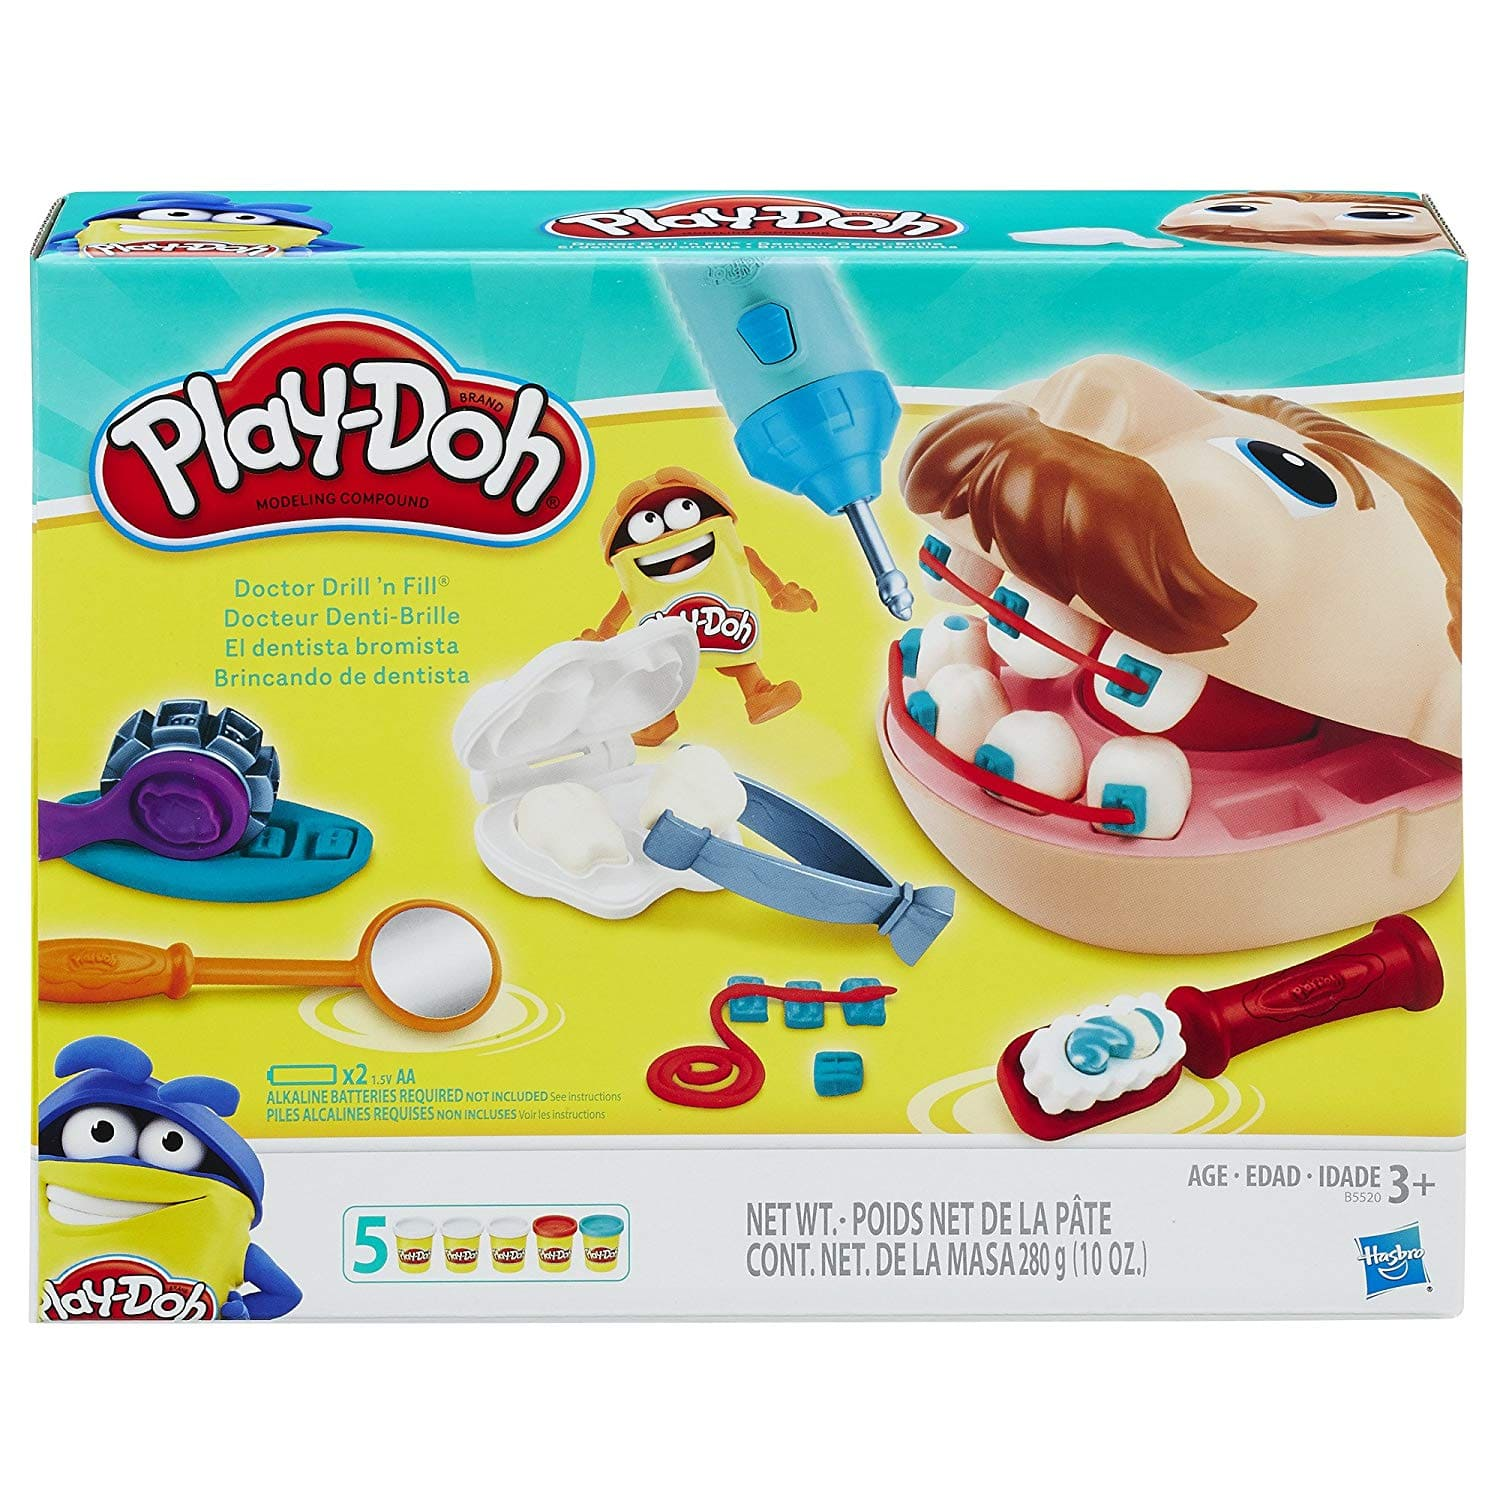 Add-on Item: Play-Doh Doctor Drill 'n Fill Retro Pack $7.26 @Amazon